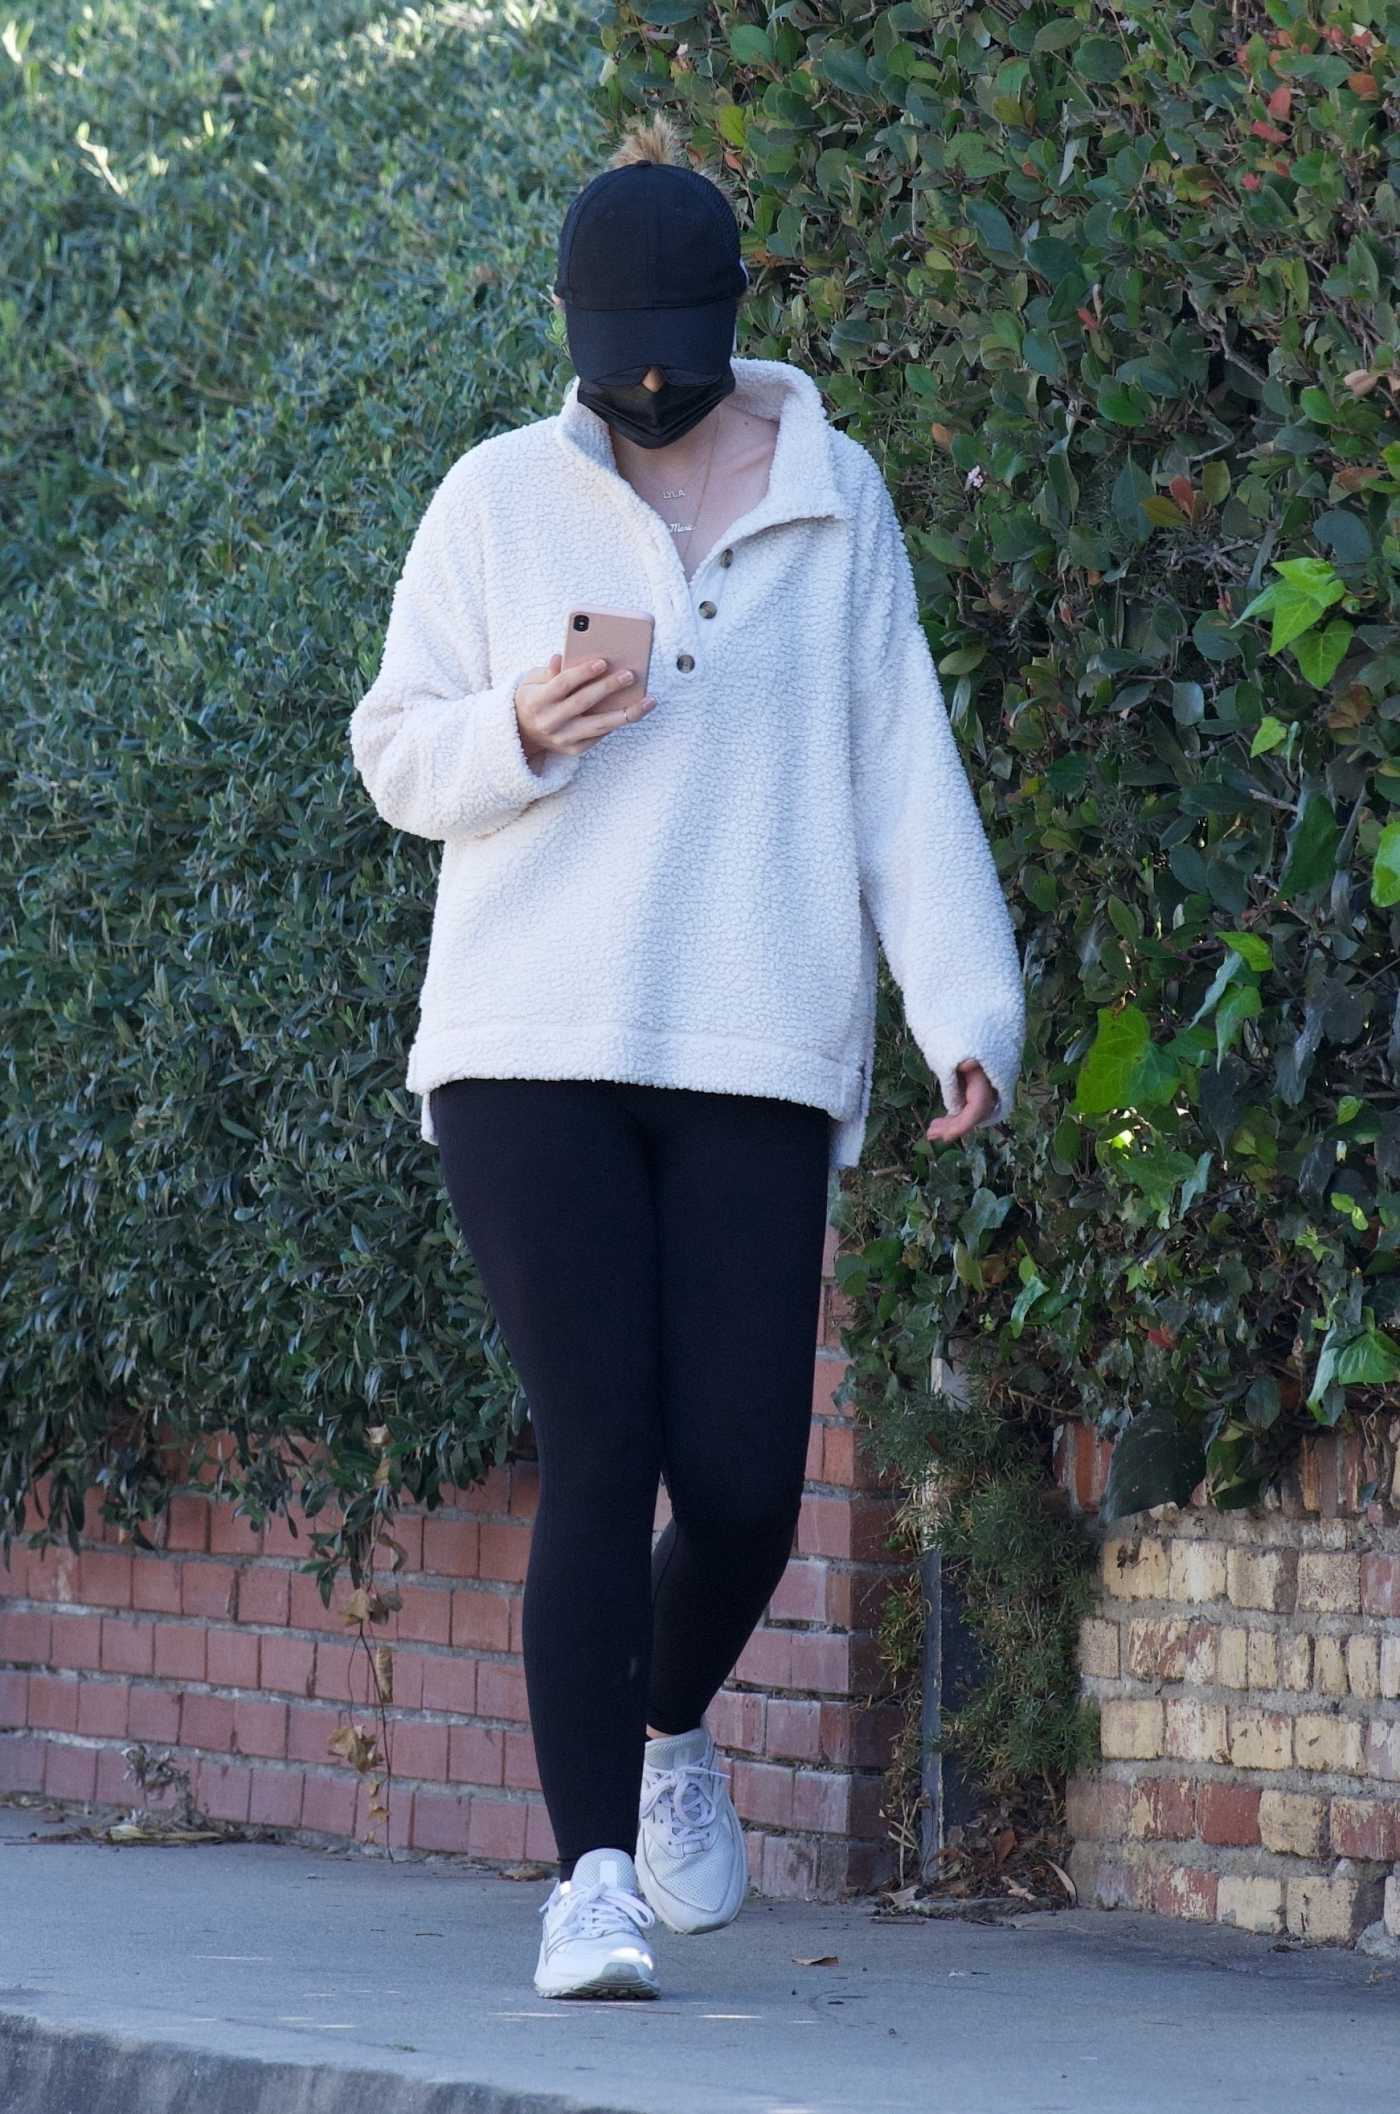 Katherine Schwarzenegger in a Black Cap Steps Out for a Solo Morning Walk in Brentwood 11/27/2020